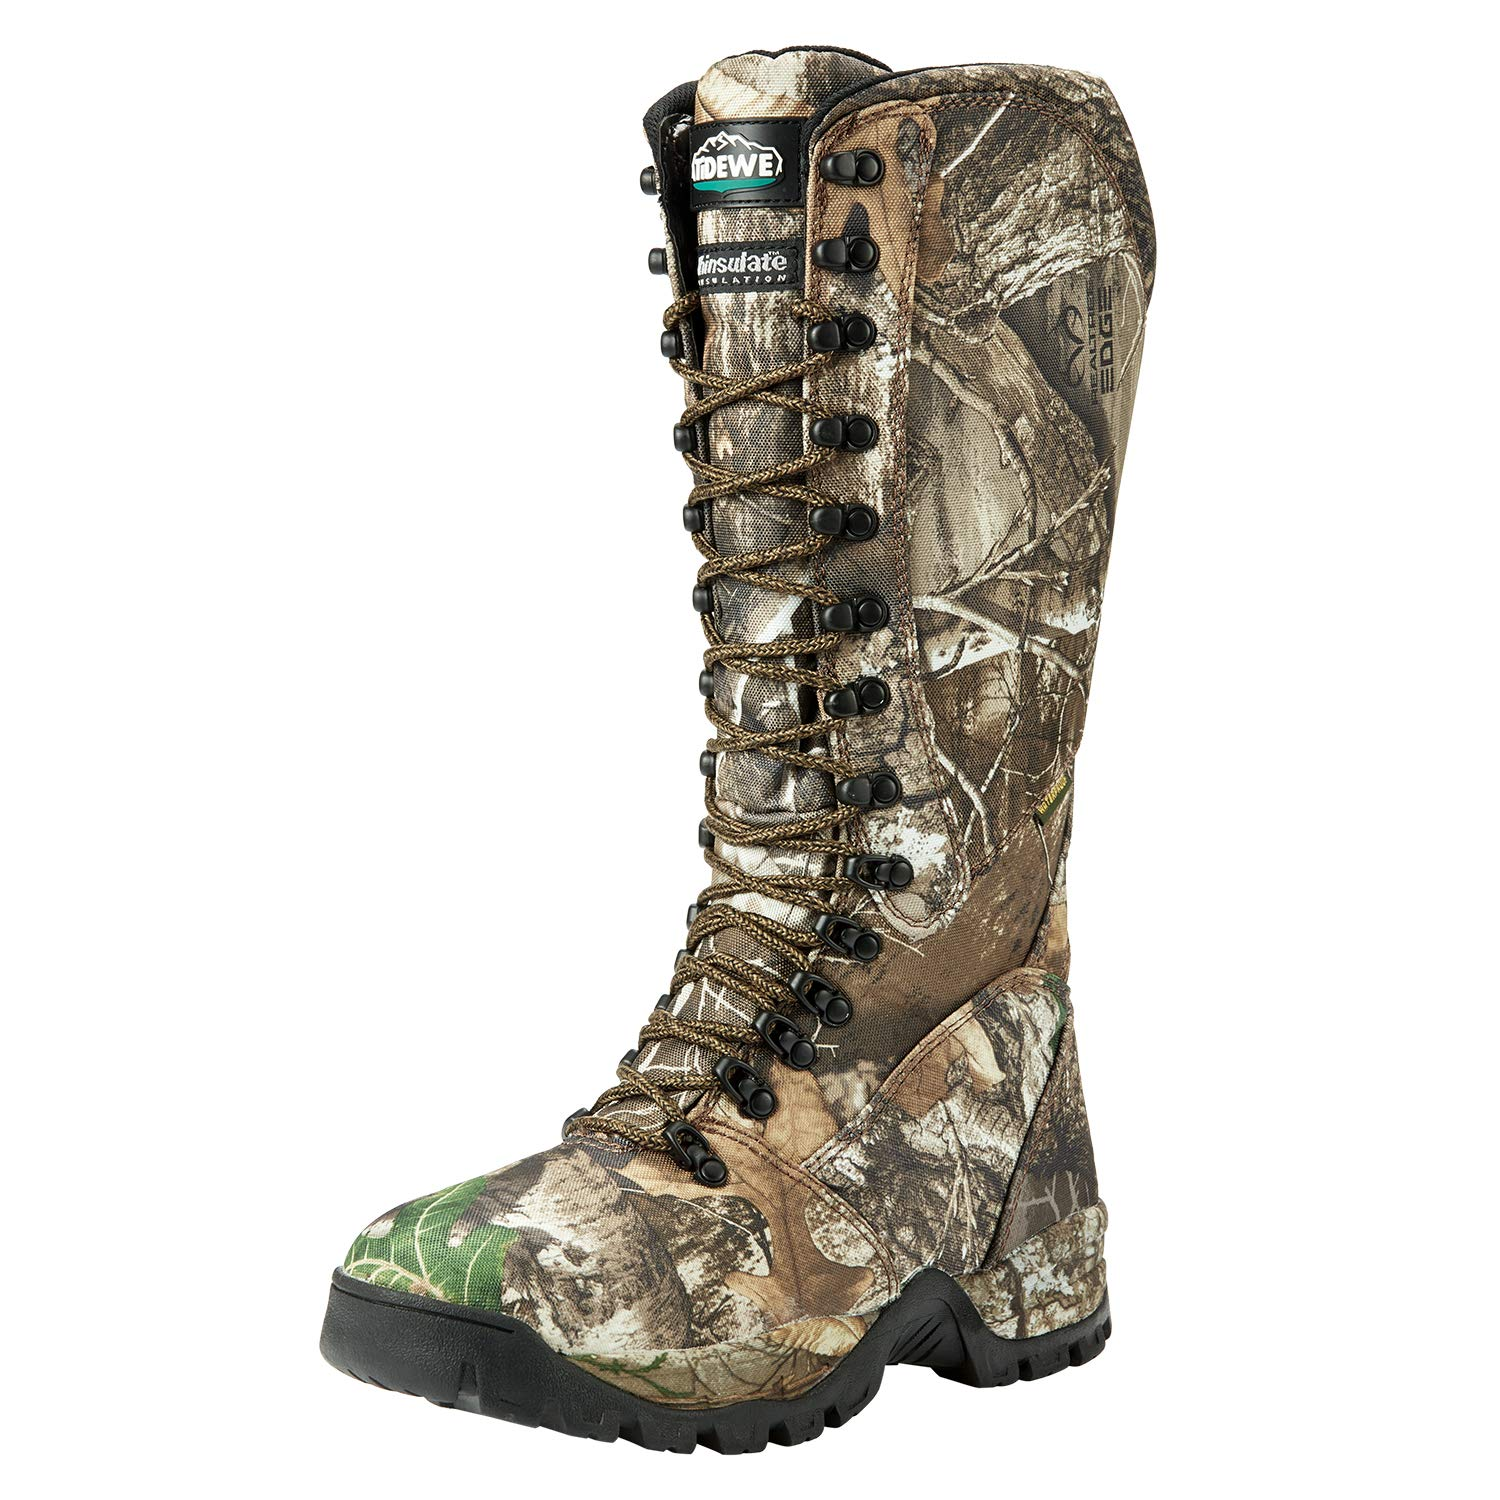 TideWe Hunting Boot for Men, Insulated 400G Men's Hunting Boot, 600D Durable Nylon Cloth Anti-Slip 16'' Breathable Side-Zip Hunting Boot Realtree Edge Camo Size 13